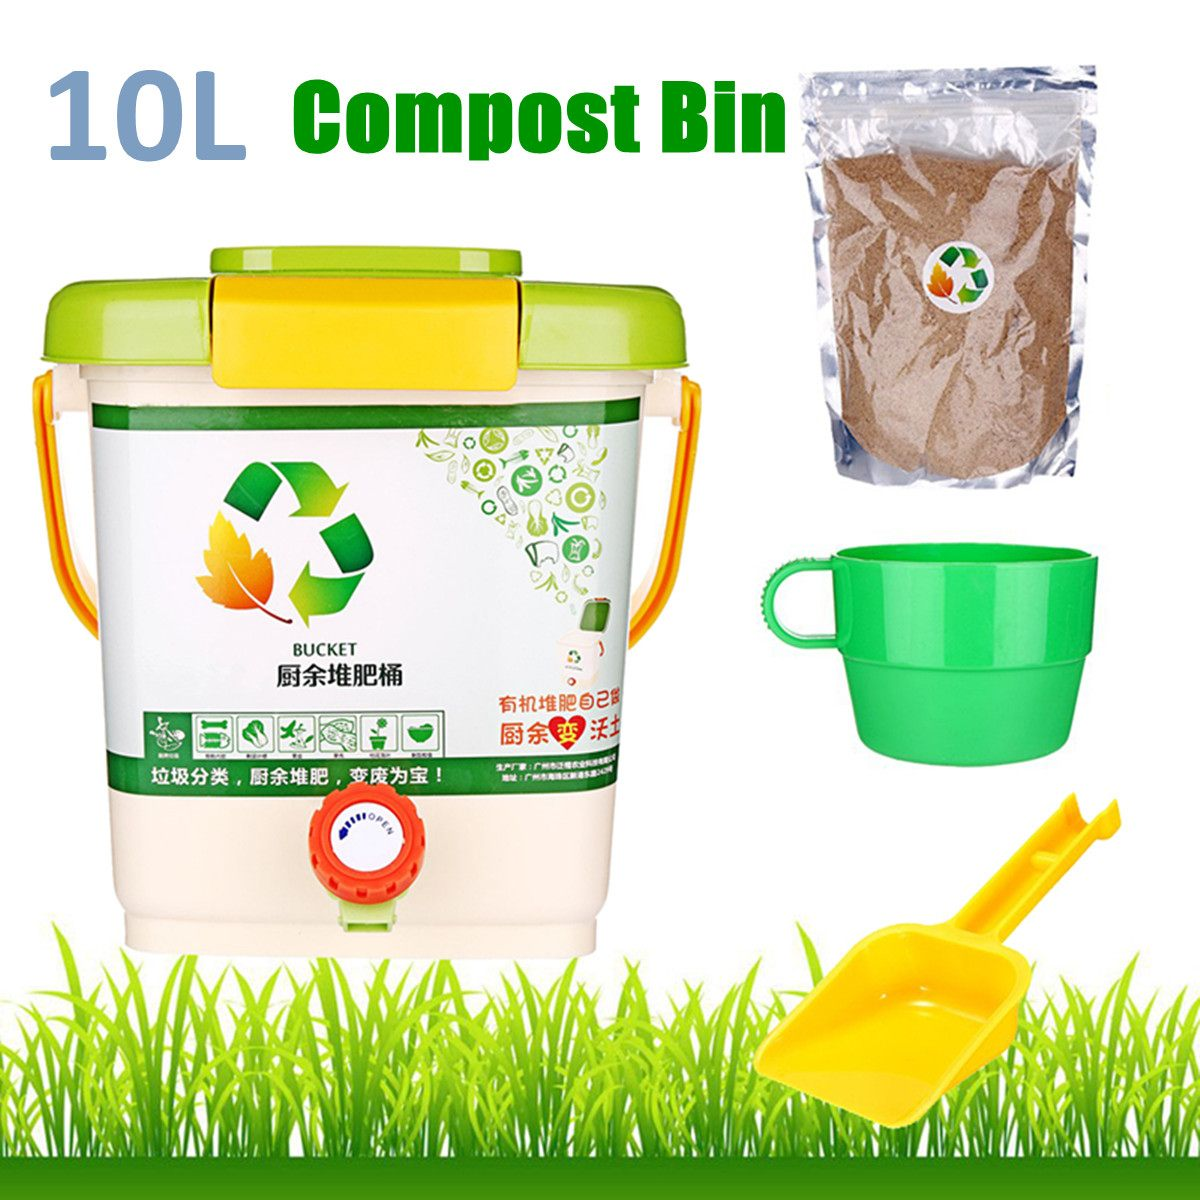 Diy Compost Bin Trash Can: 10L Kitchen Compost Bin Recycle Composter Aerated Compost